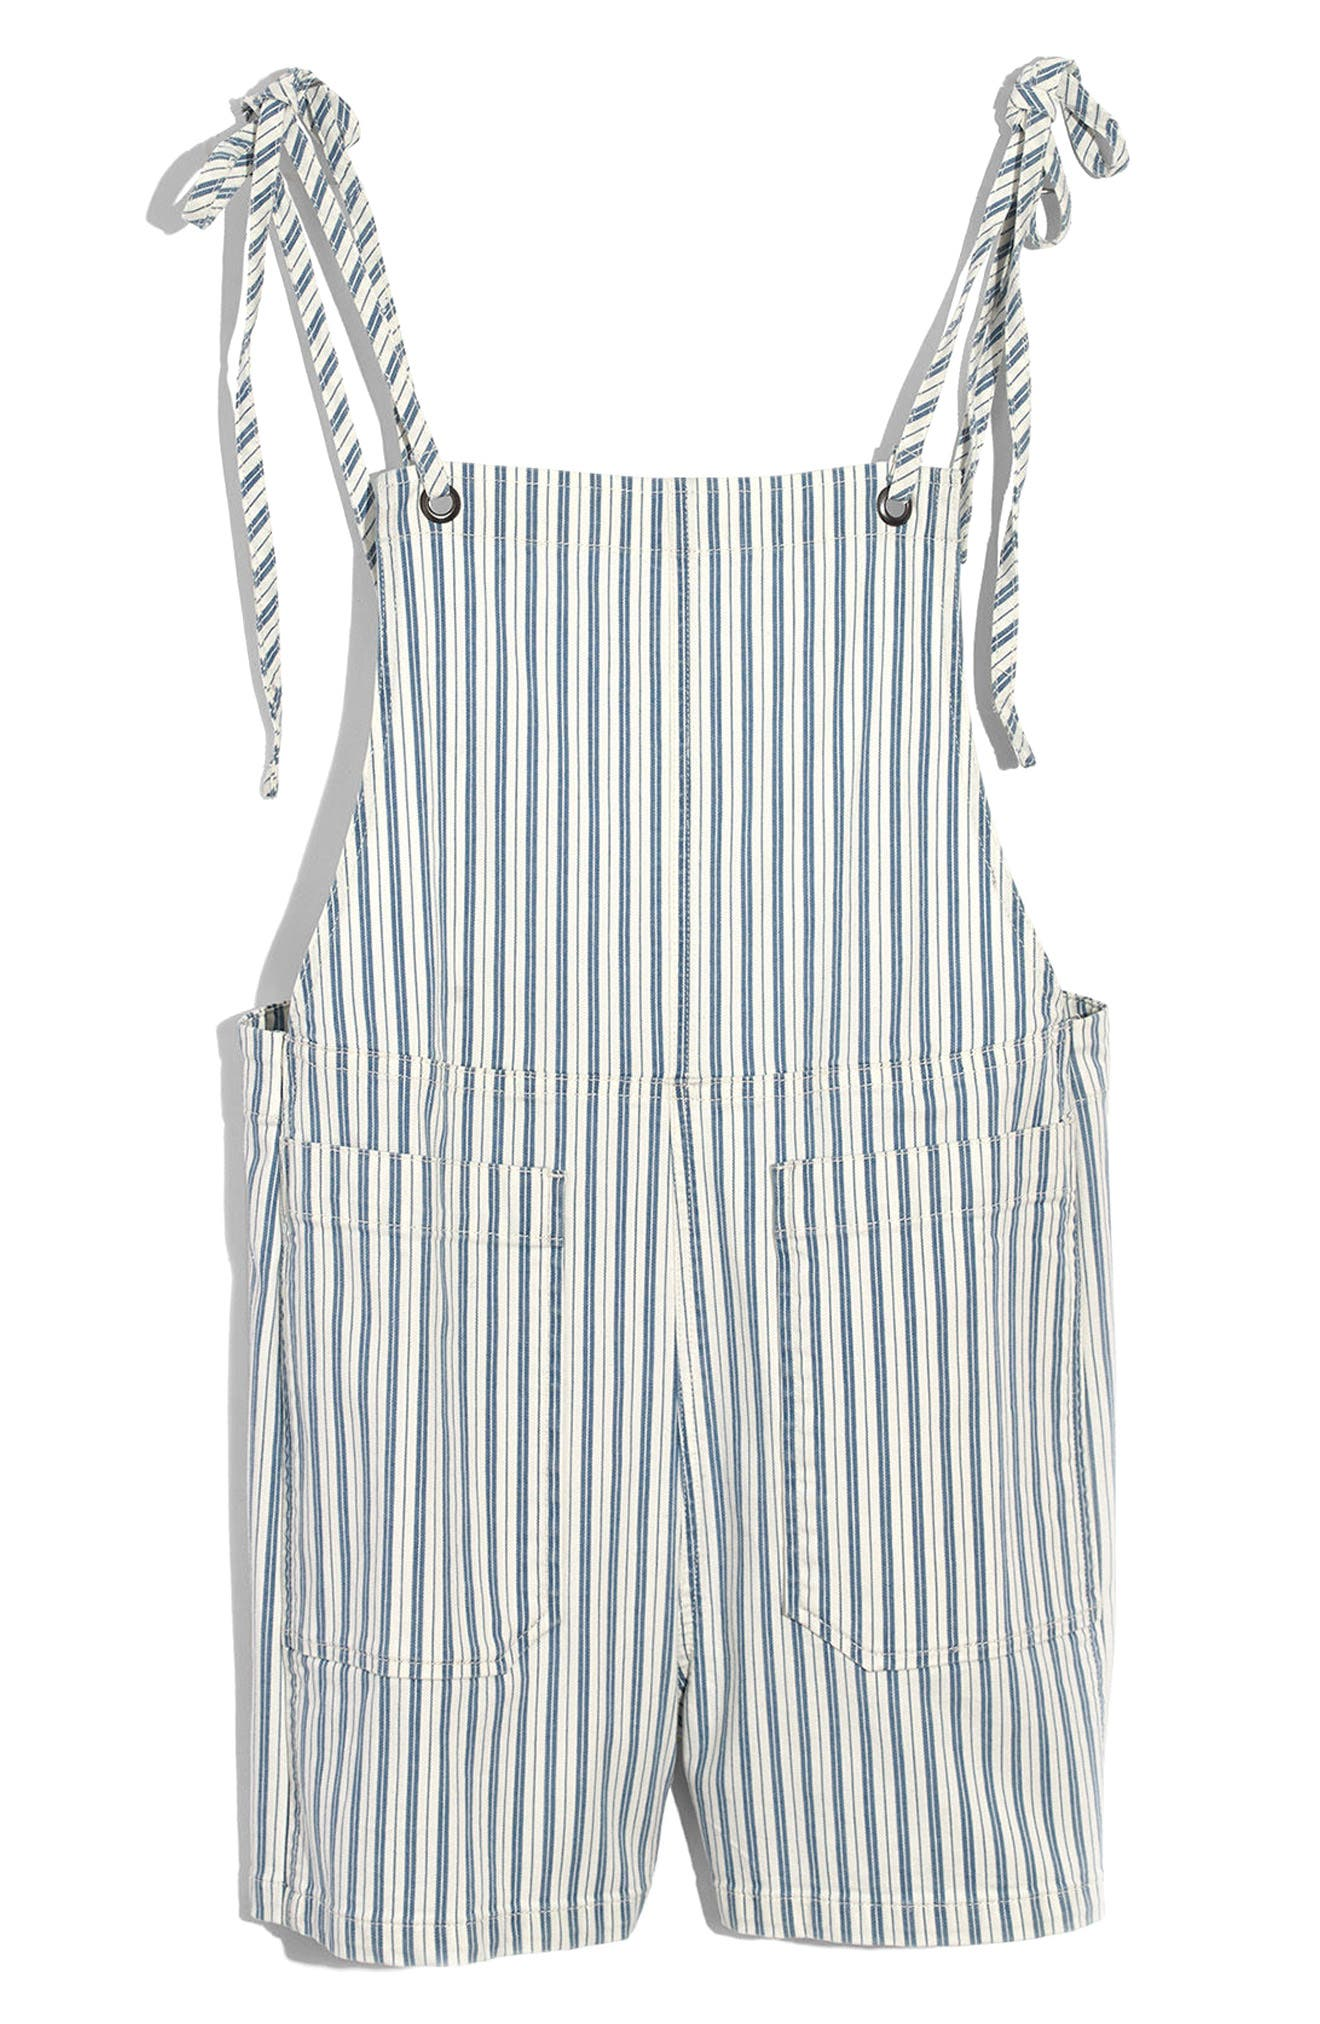 Tie Strap Denim Short Overalls,                             Alternate thumbnail 3, color,                             Kathy Stripe